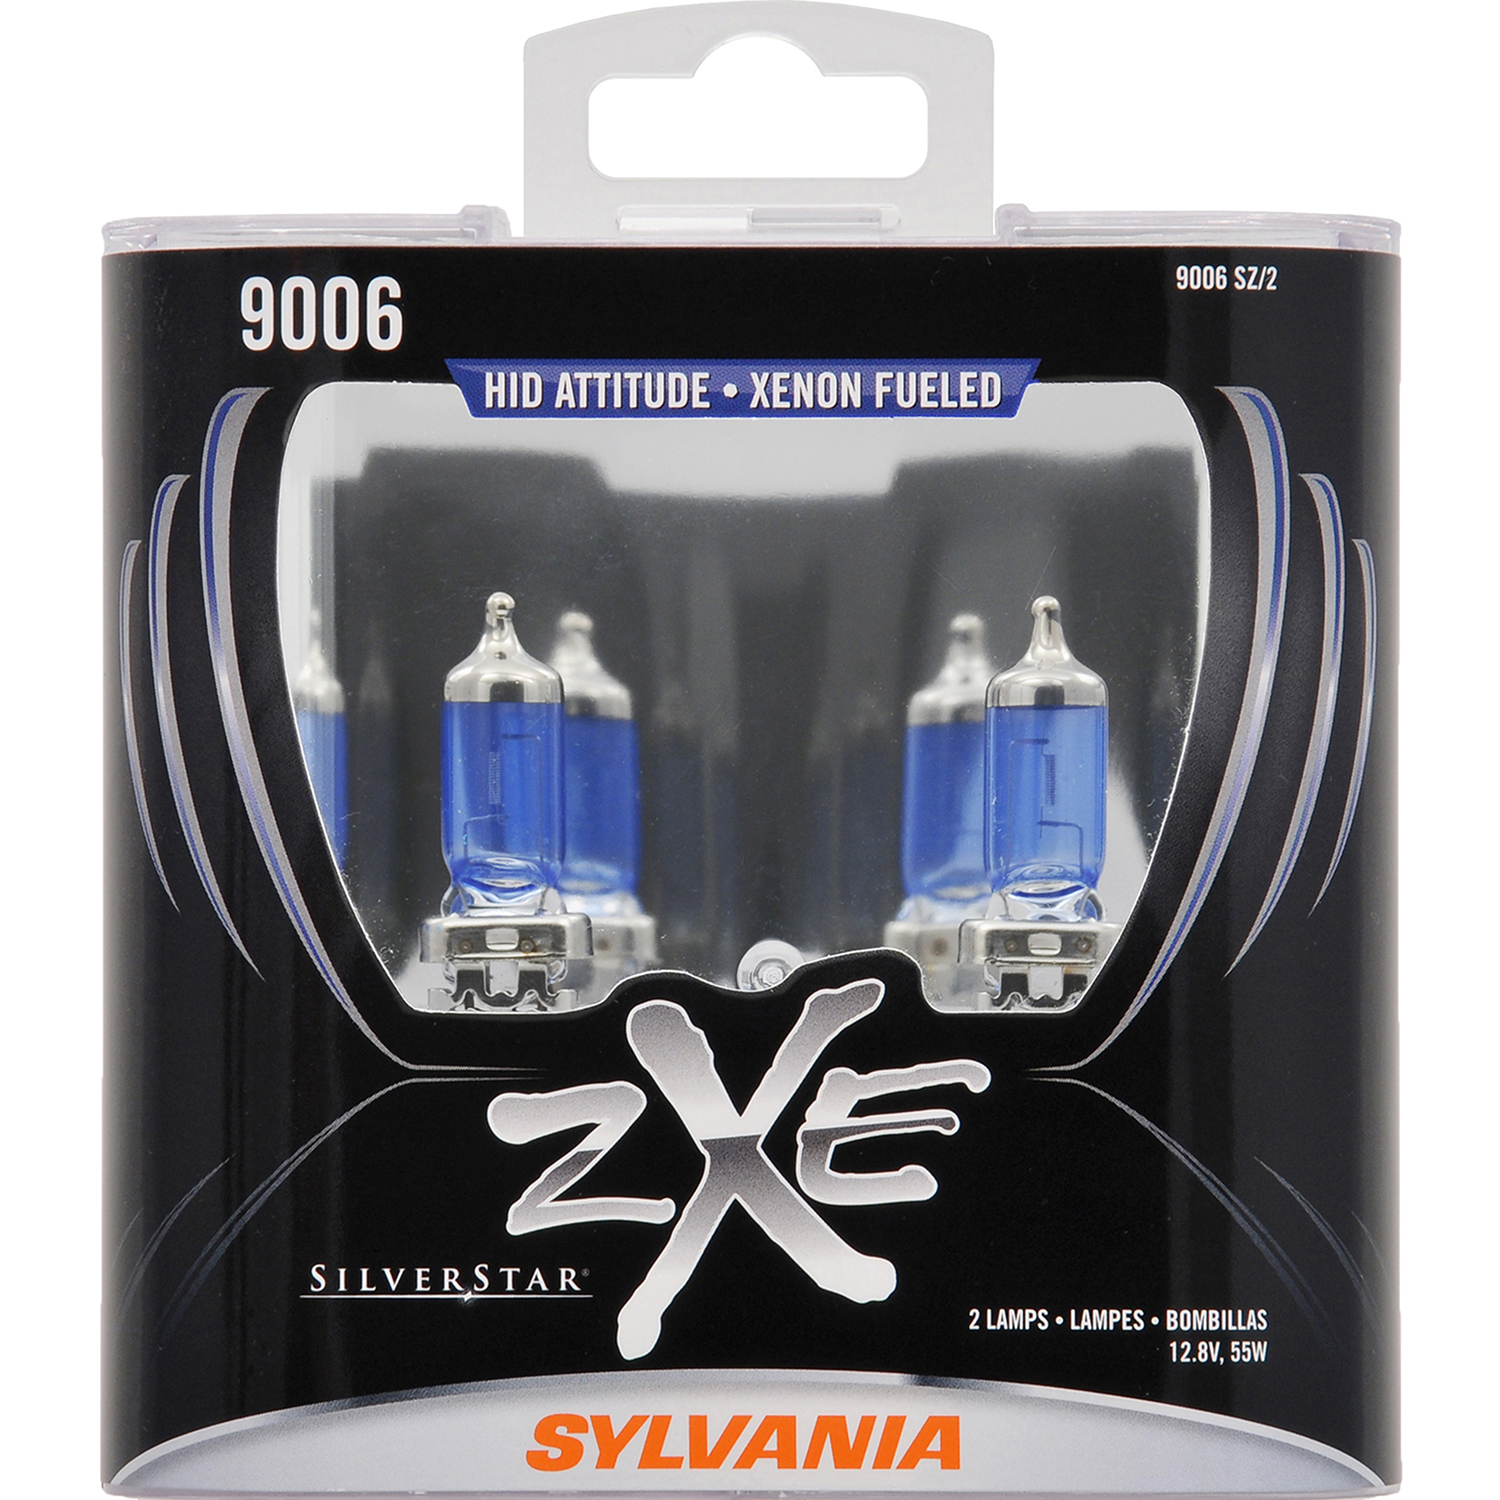 SYLVANIA 9006 SilverStar zXe Halogen Headlight Bulb, Pack of 2